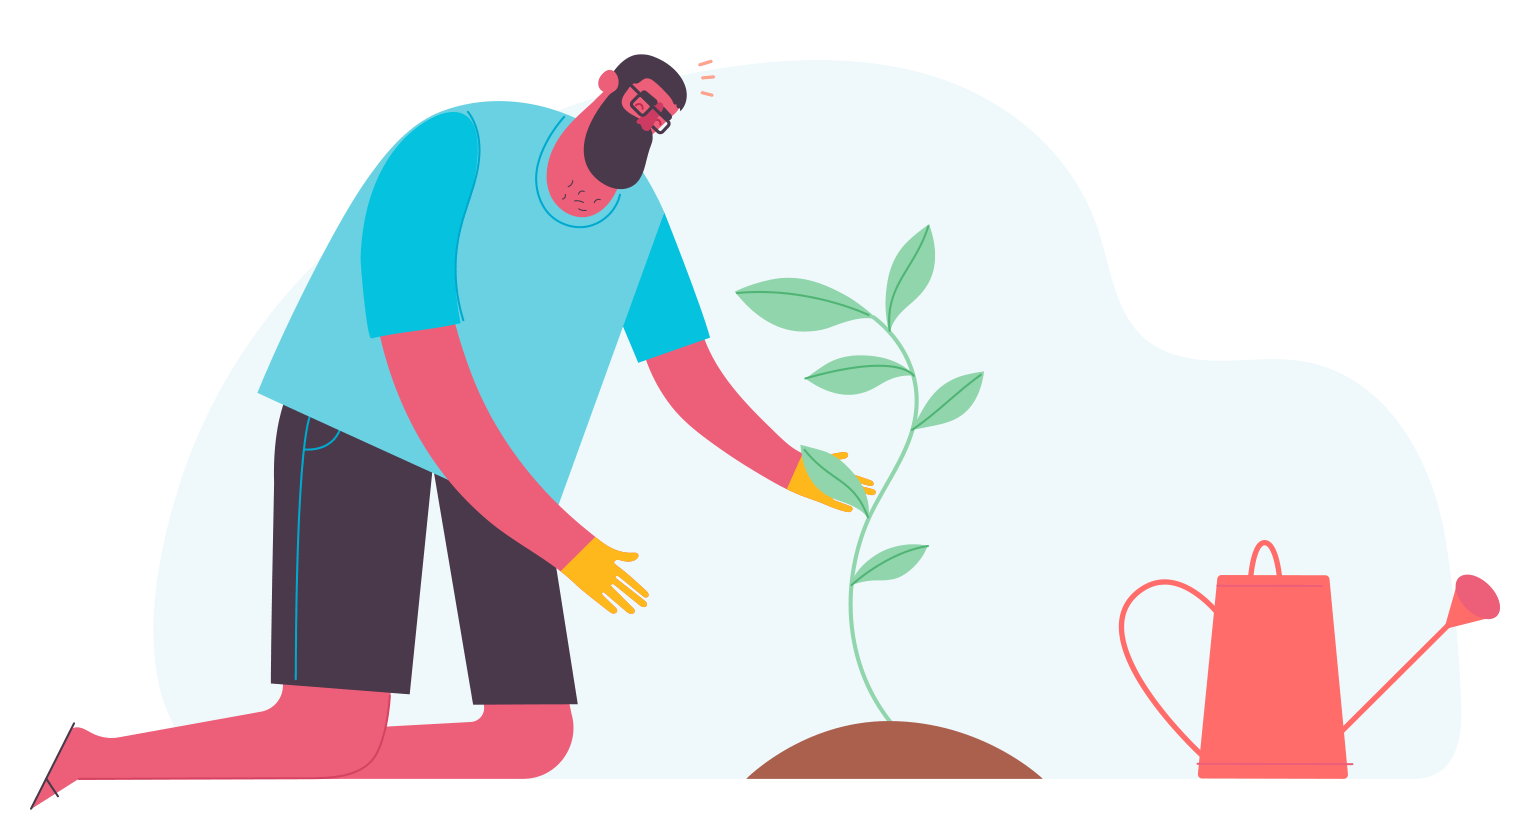 Illustration of a person tending to a plant that is growing